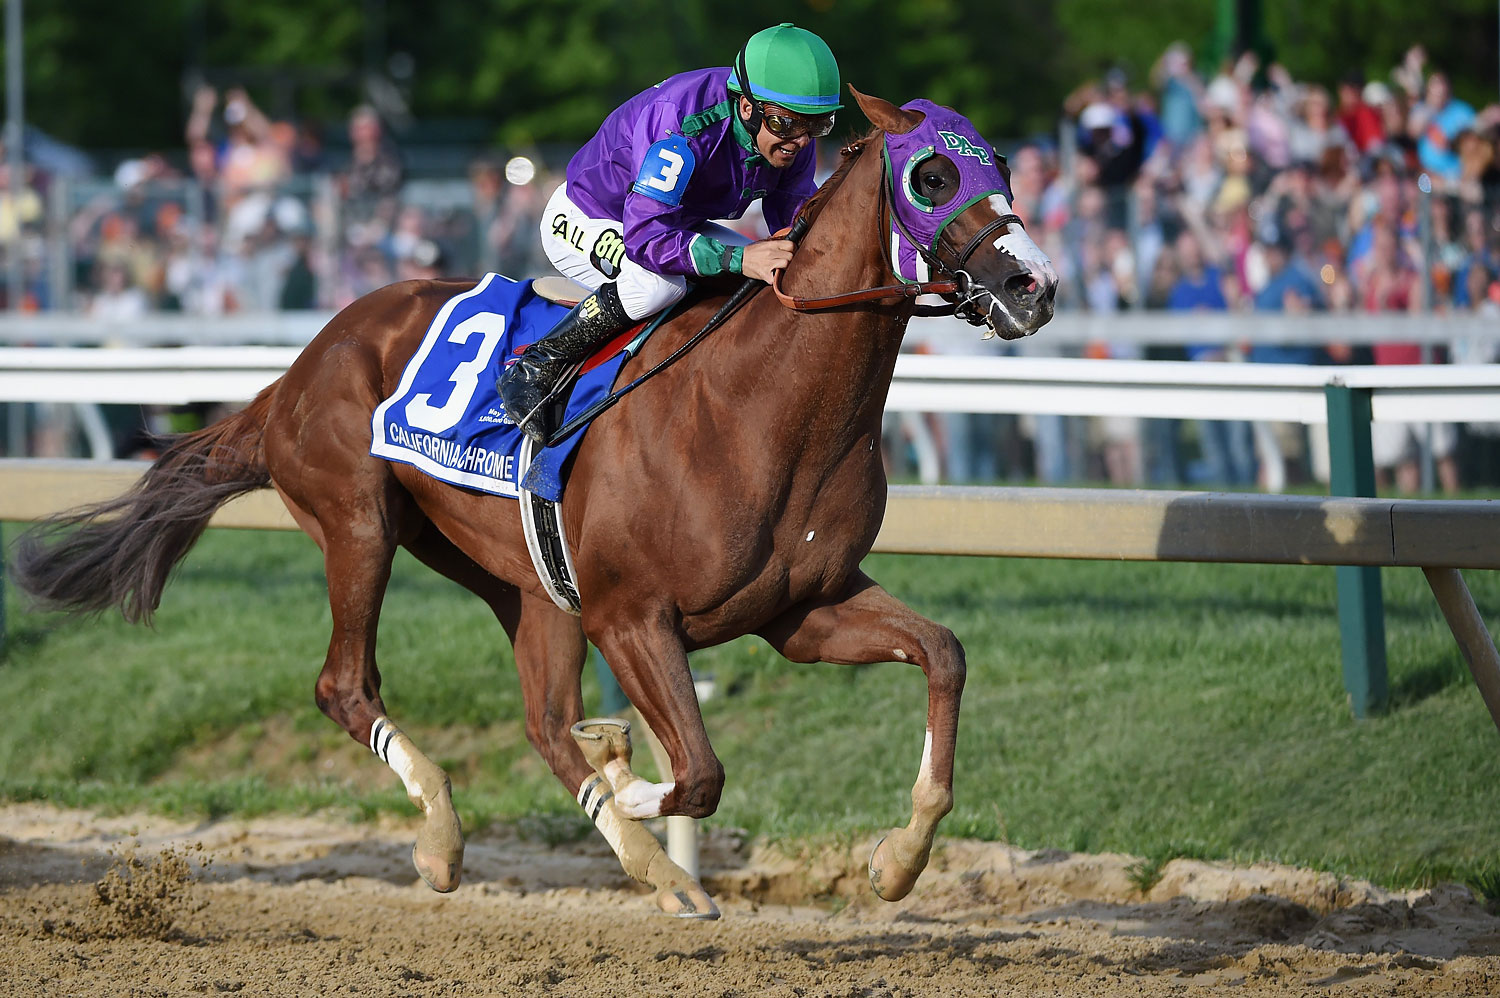 California Chrome #3, ridden by Victor Espinoza, head to the finish line enroute to winning the 139th running of the Preakness Stakes at Pimlico Race Course on May 17, 2014 in Baltimore.